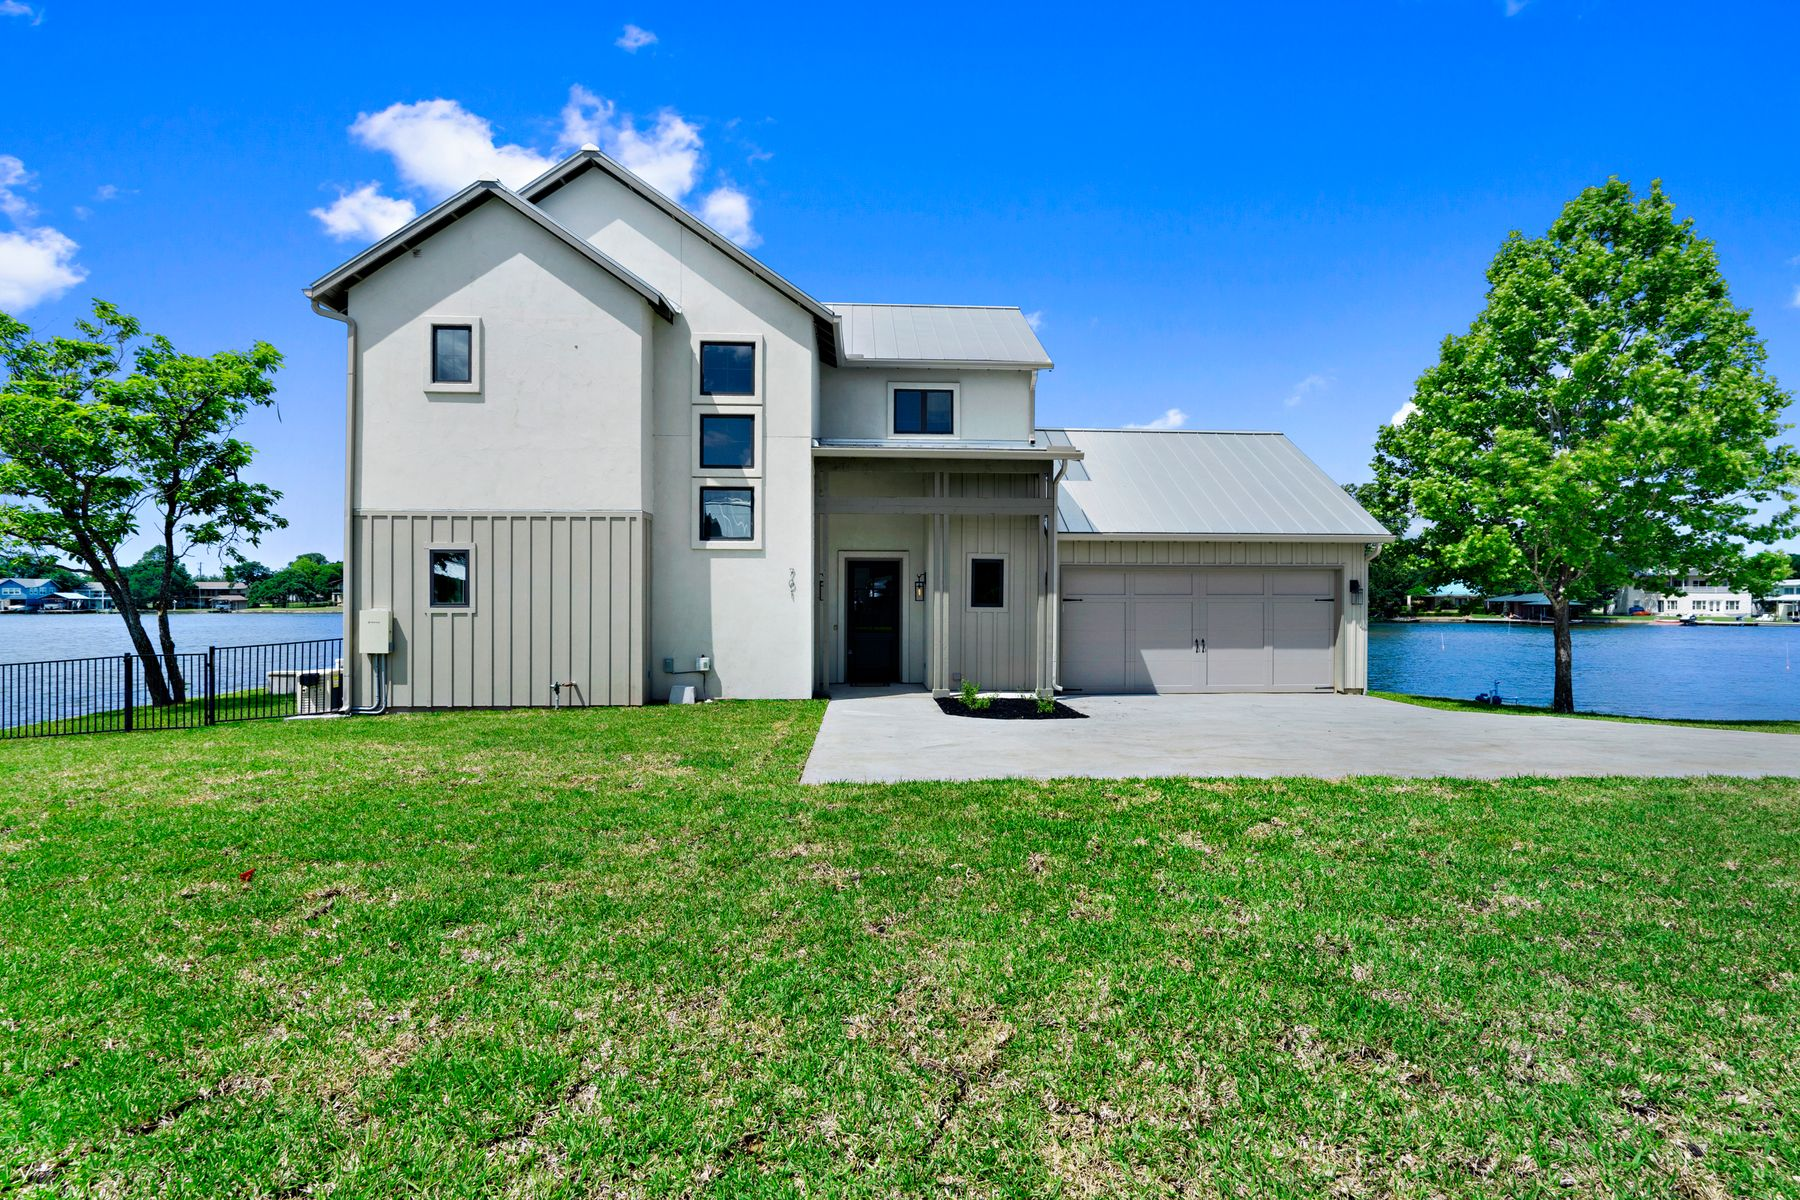 Single Family Homes for Sale at Fantastic Modern Farmhouse /// New Construction on Lake LBJ 701 Woodland Hills Drive On Lake LBJ Marble Falls, Texas 78654 United States